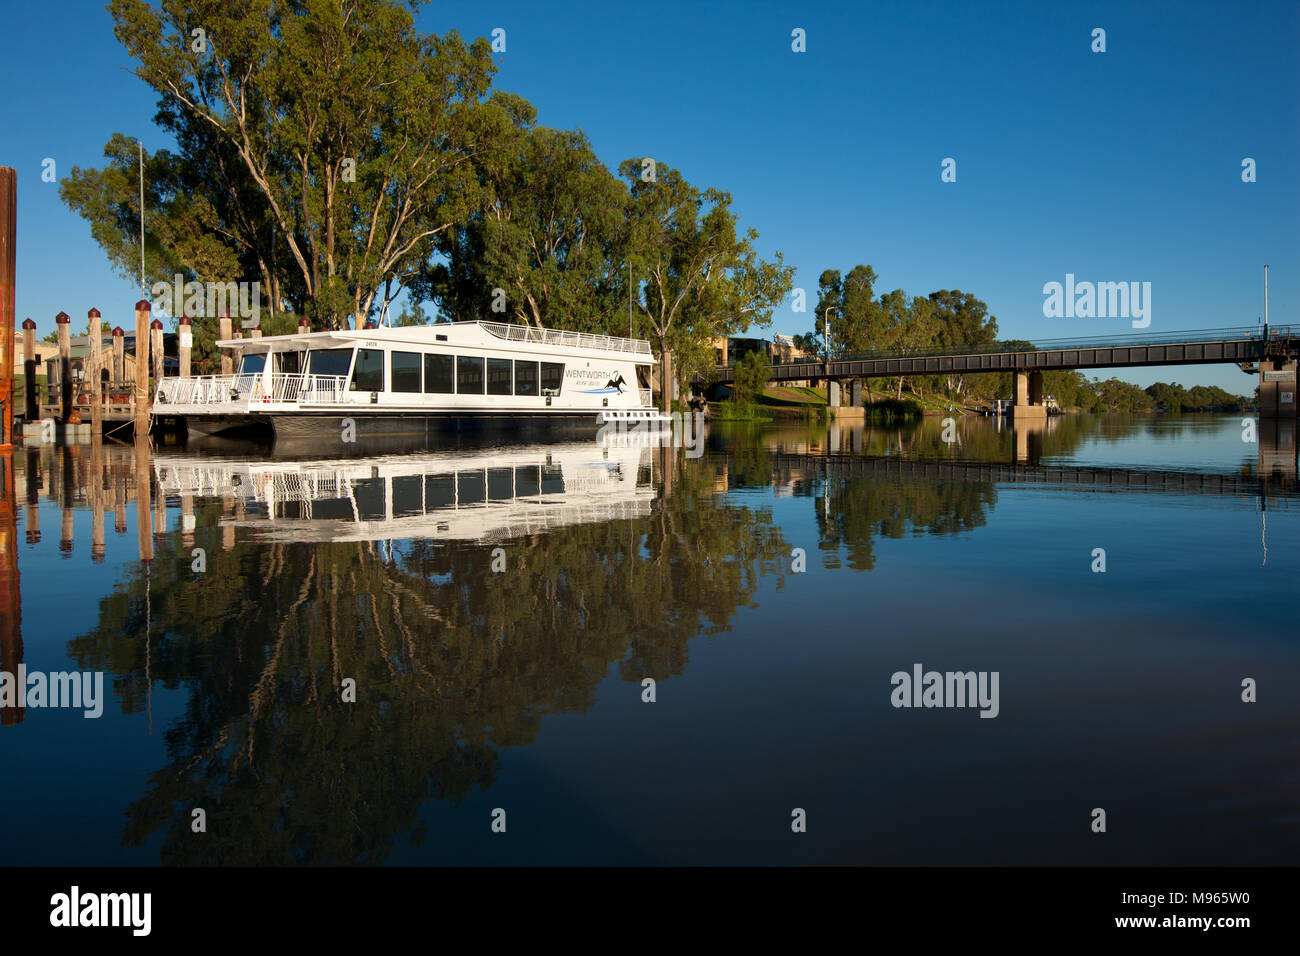 Wentworth River Cruise boat, moored at Wentworth Wharf on the Darling River. - Stock Image